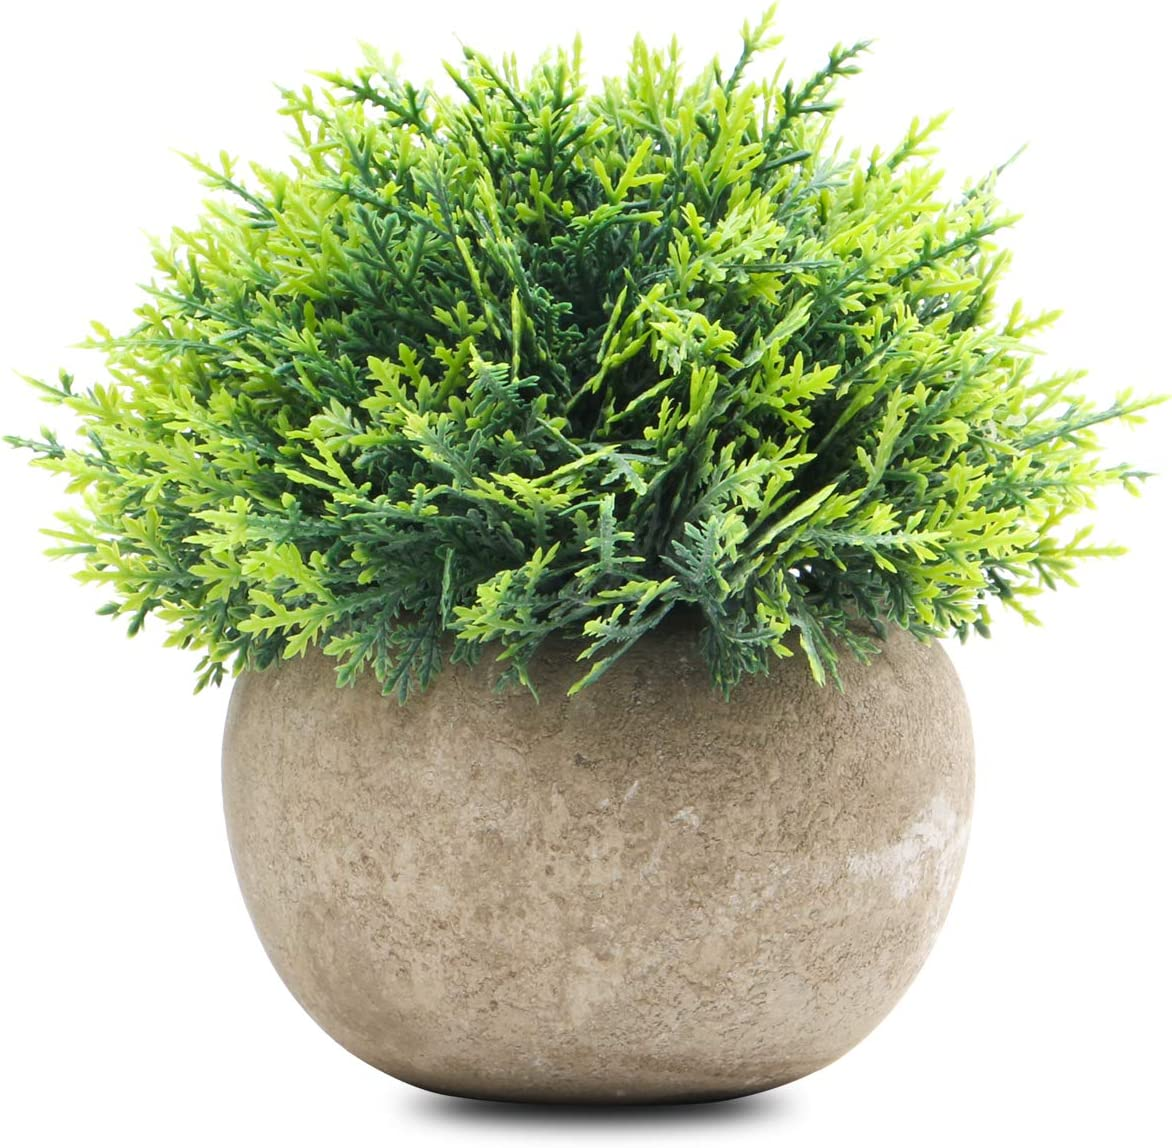 Epartswide Mini Fake Plants,Plastic Fake Green Grass Faux Greenery Topiary Shrubs with Grey Pots for Bathroom Office Home Decor